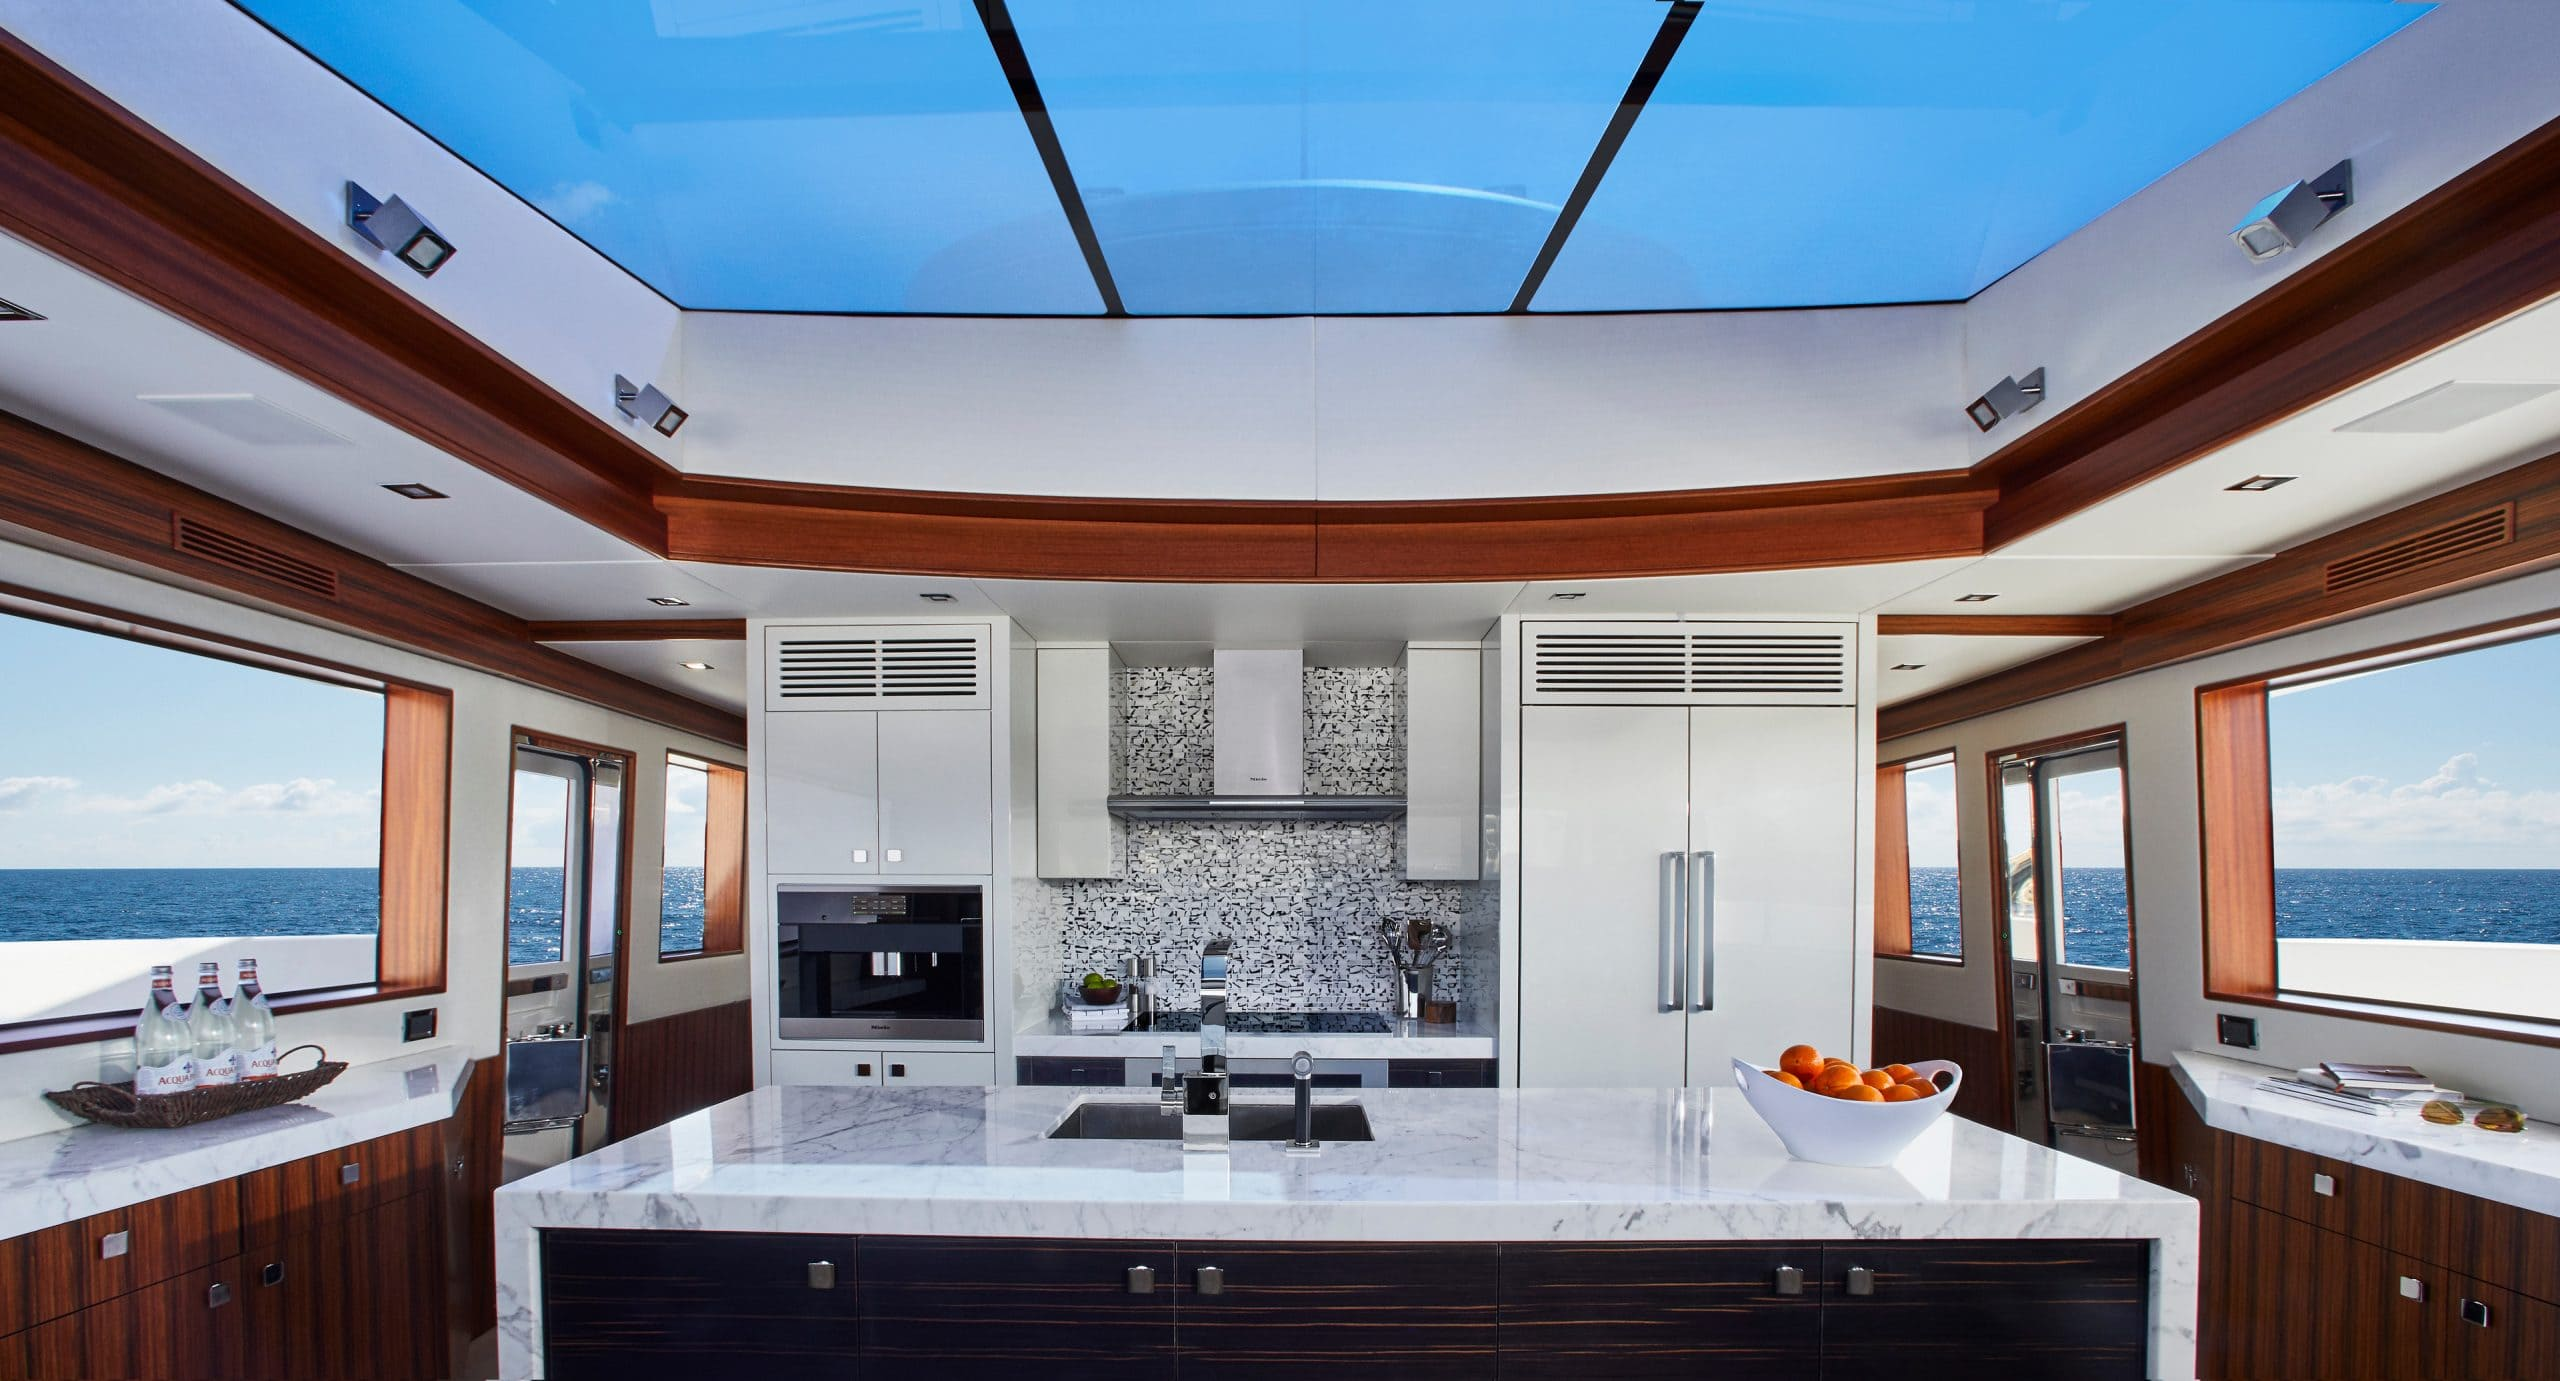 Hatteras M90 Panacera Galley With Sky Light